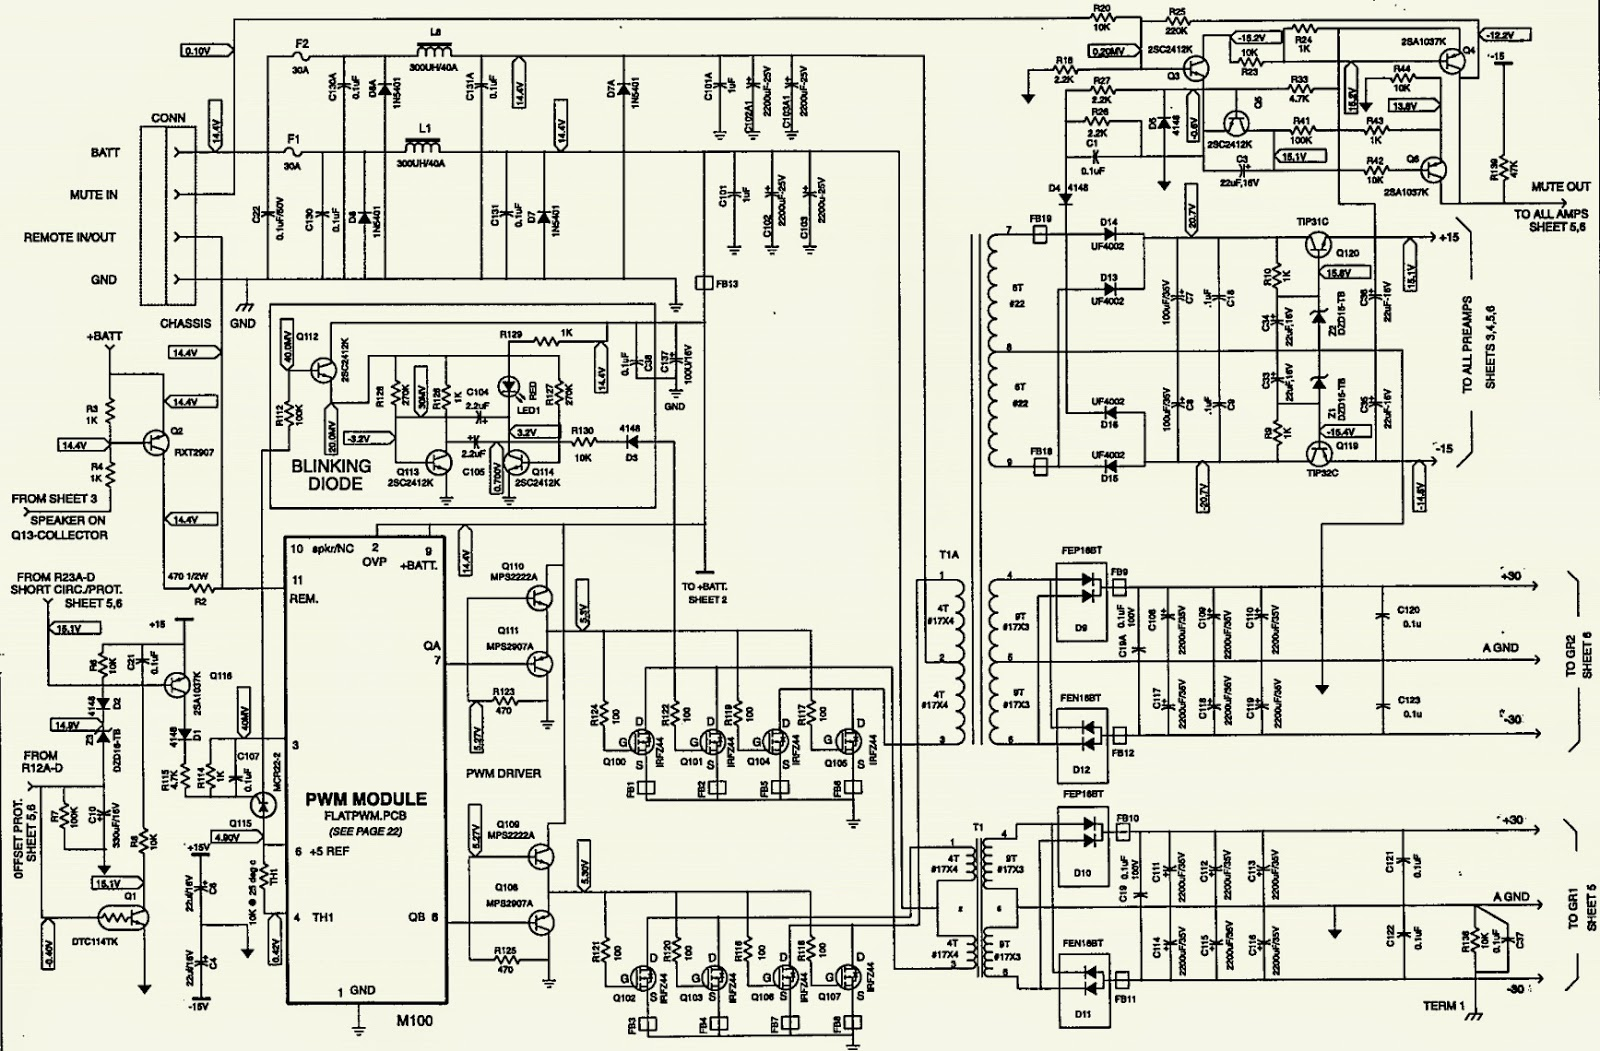 Jbl Jtq360 Car Audio Schematic Circuit Diagram Electro Help Wiring Also Jl Along With